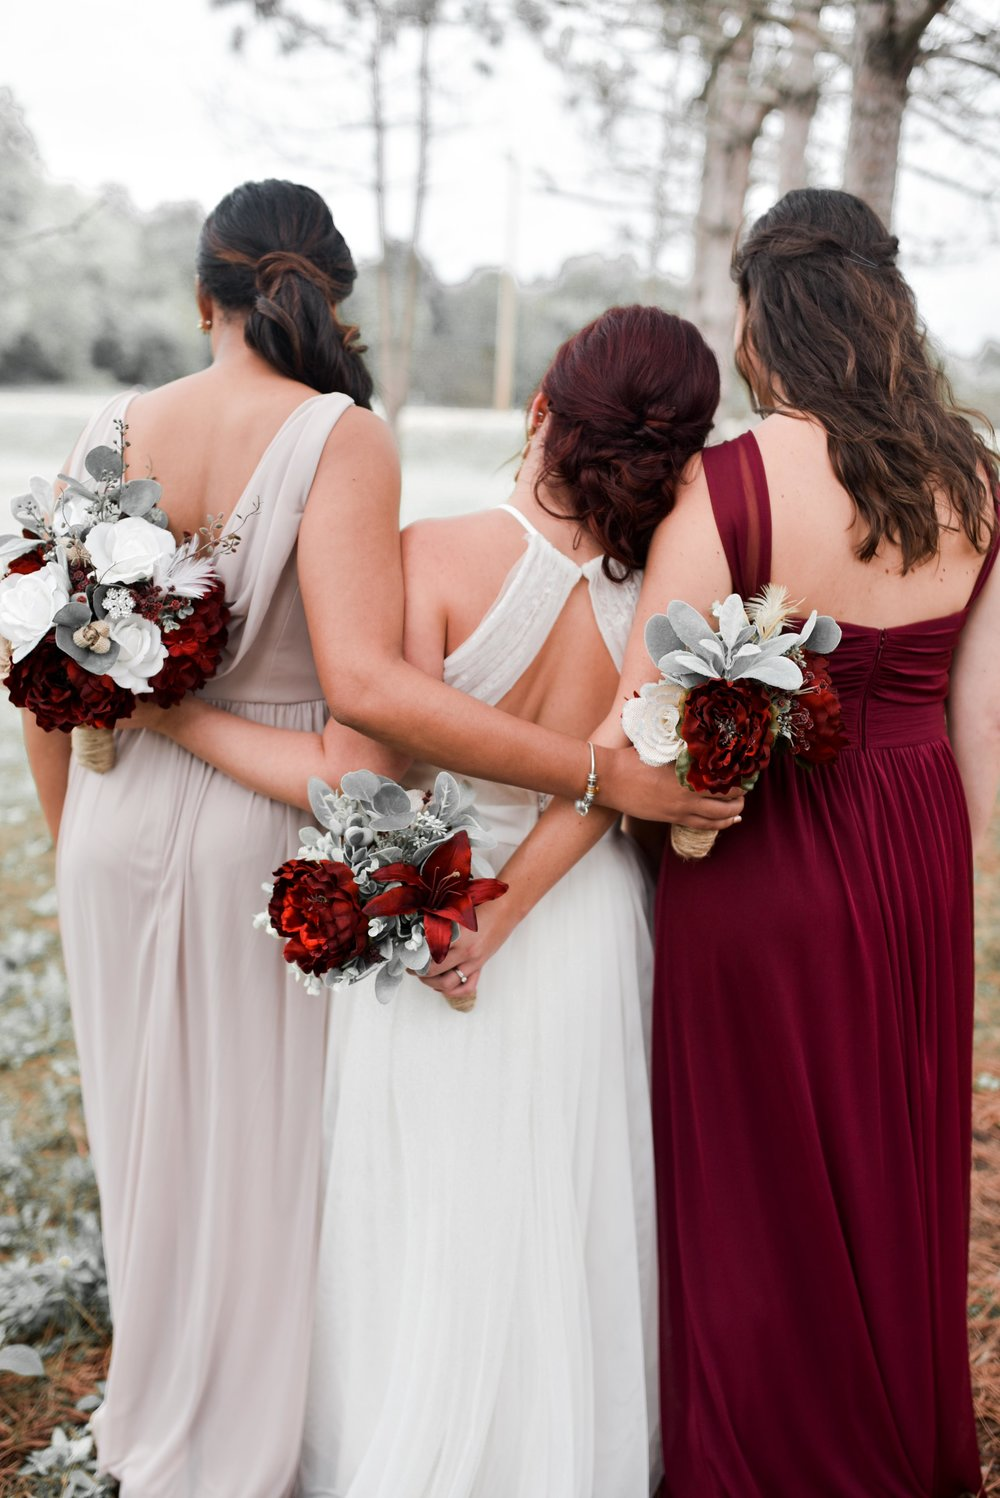 Bridesmaid Photos, Bridesmaids, Illinois Wedding